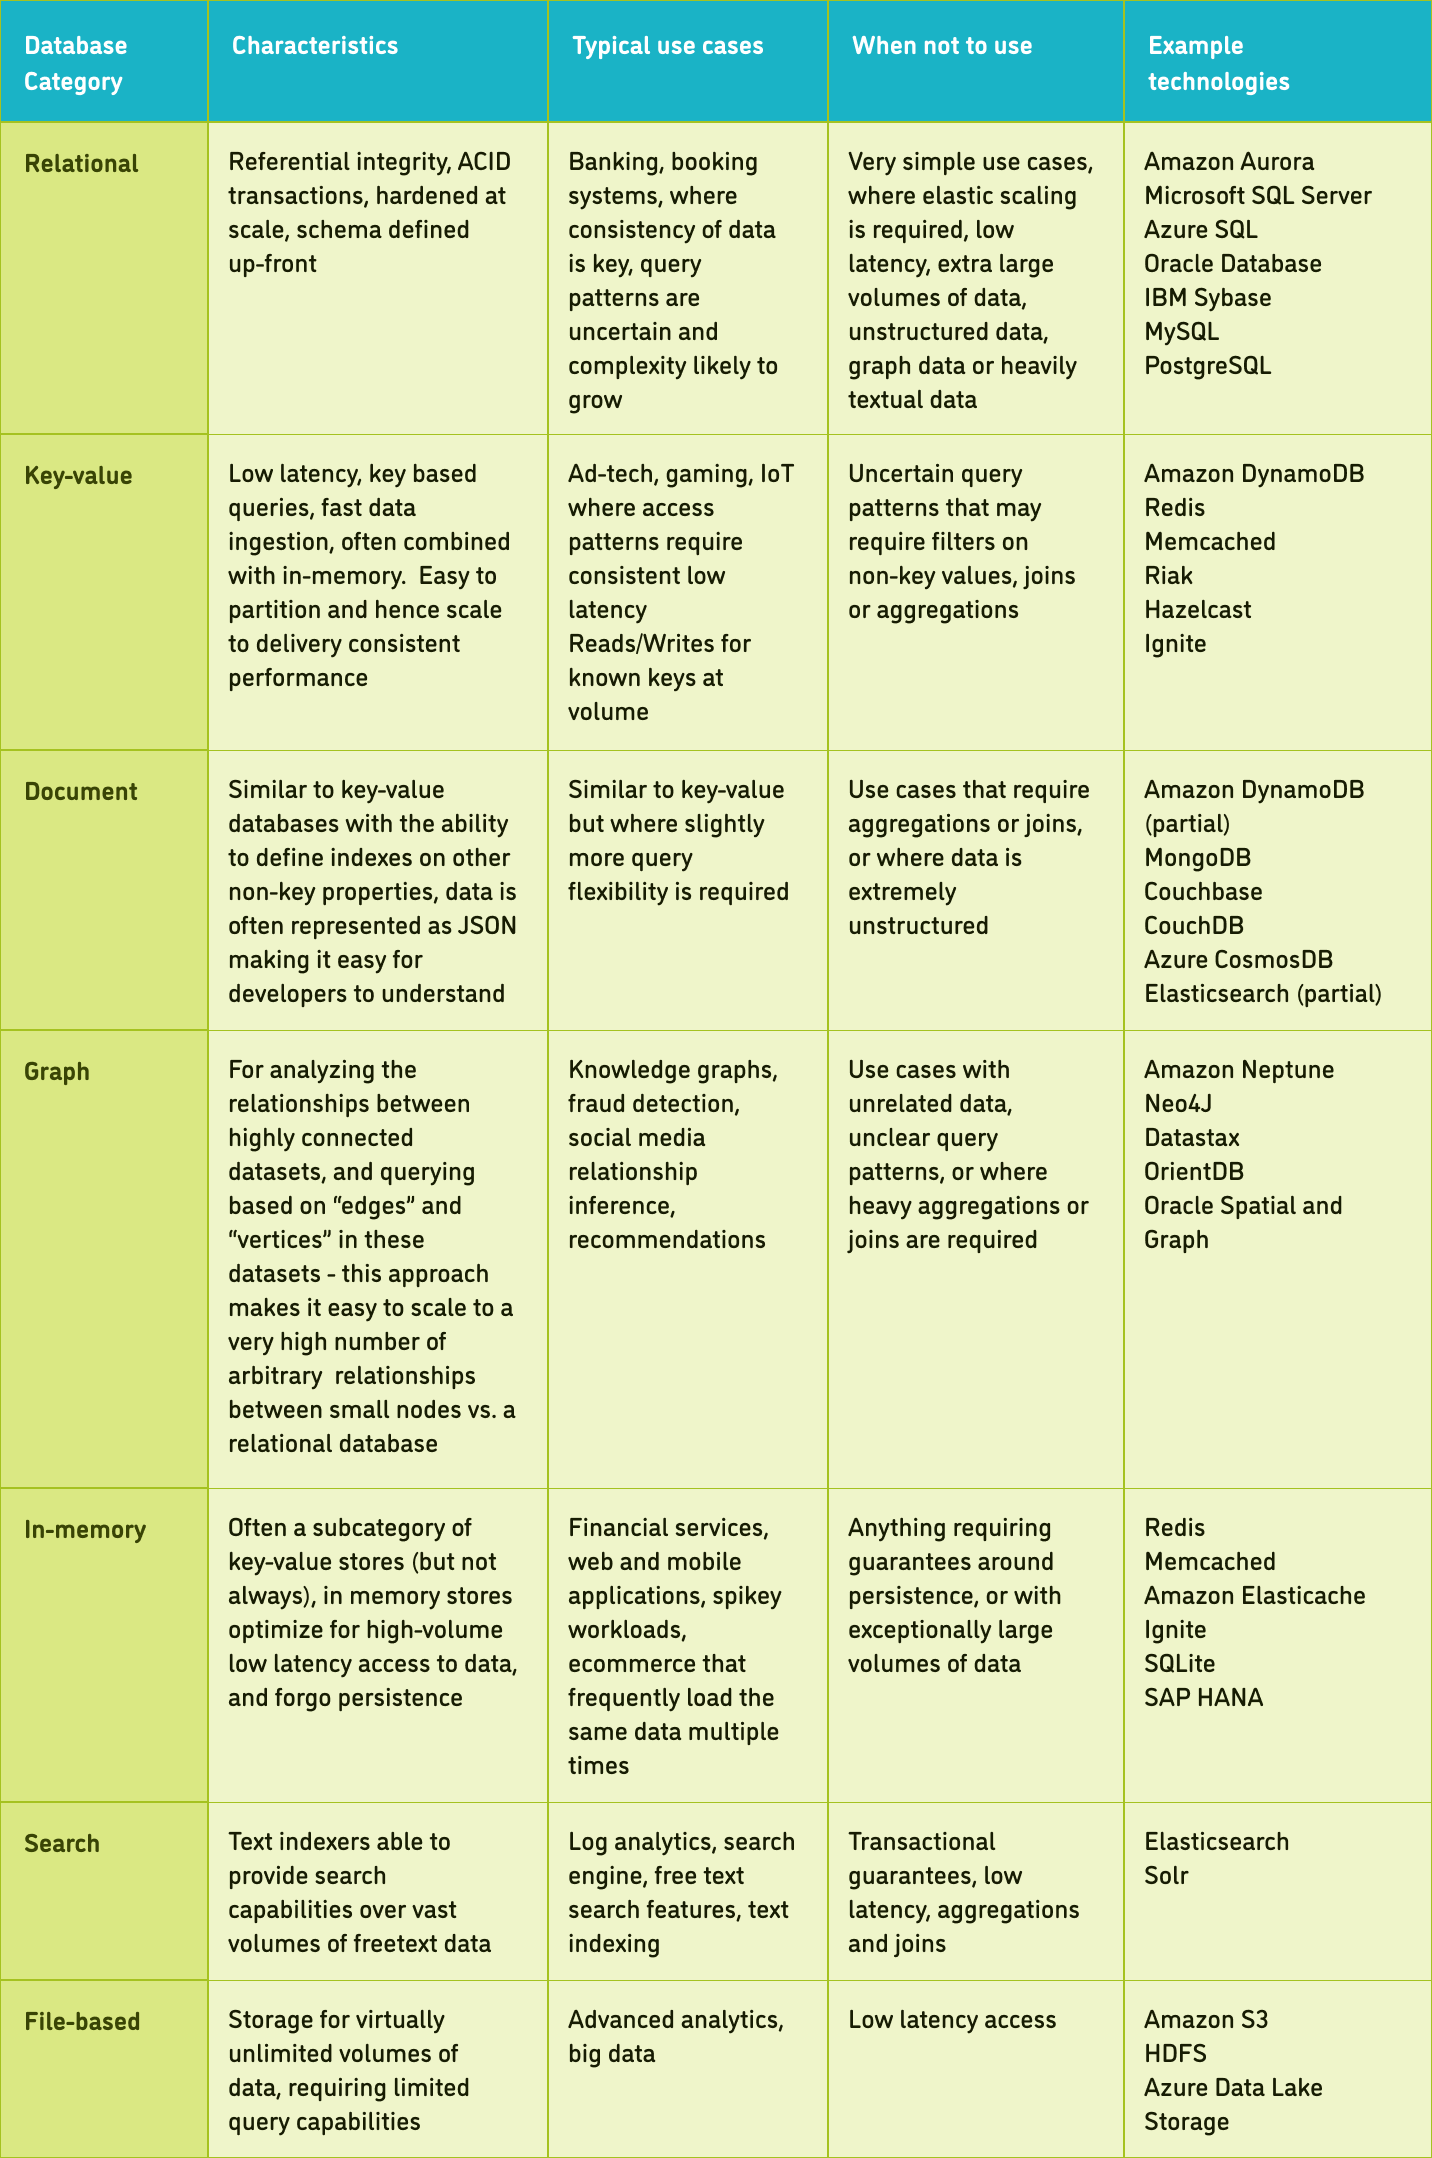 Database characteristics and uses.